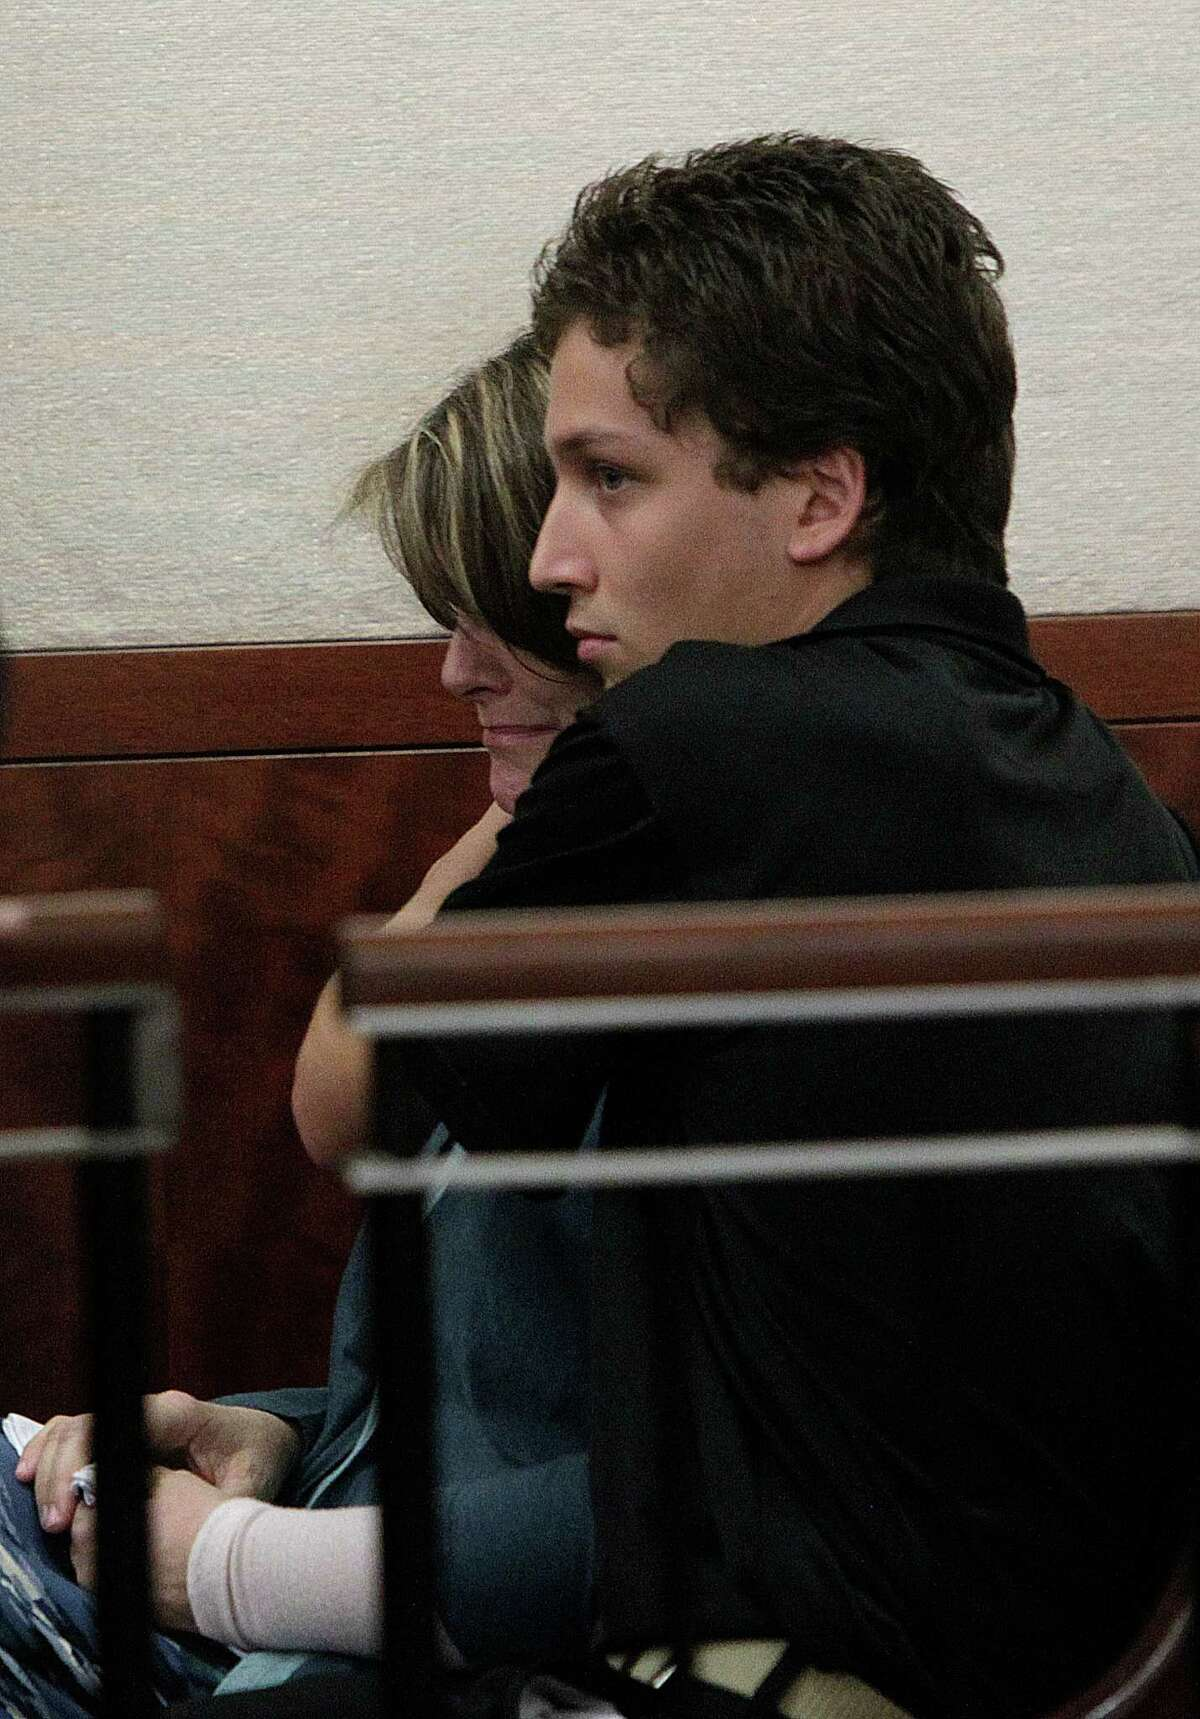 Donna Rodriguez is embraced by Daniel Rodriguez as her husband Raul Rodriguez is sentenced 40 years in prison in the 178th State DIstrict Court at the Harris County Criminal Justice Center on Wednesday, June 27, 2012, in Houston. Rodriguez is sentenced 40 years in prison for the shooting death of Kelly Danaher.